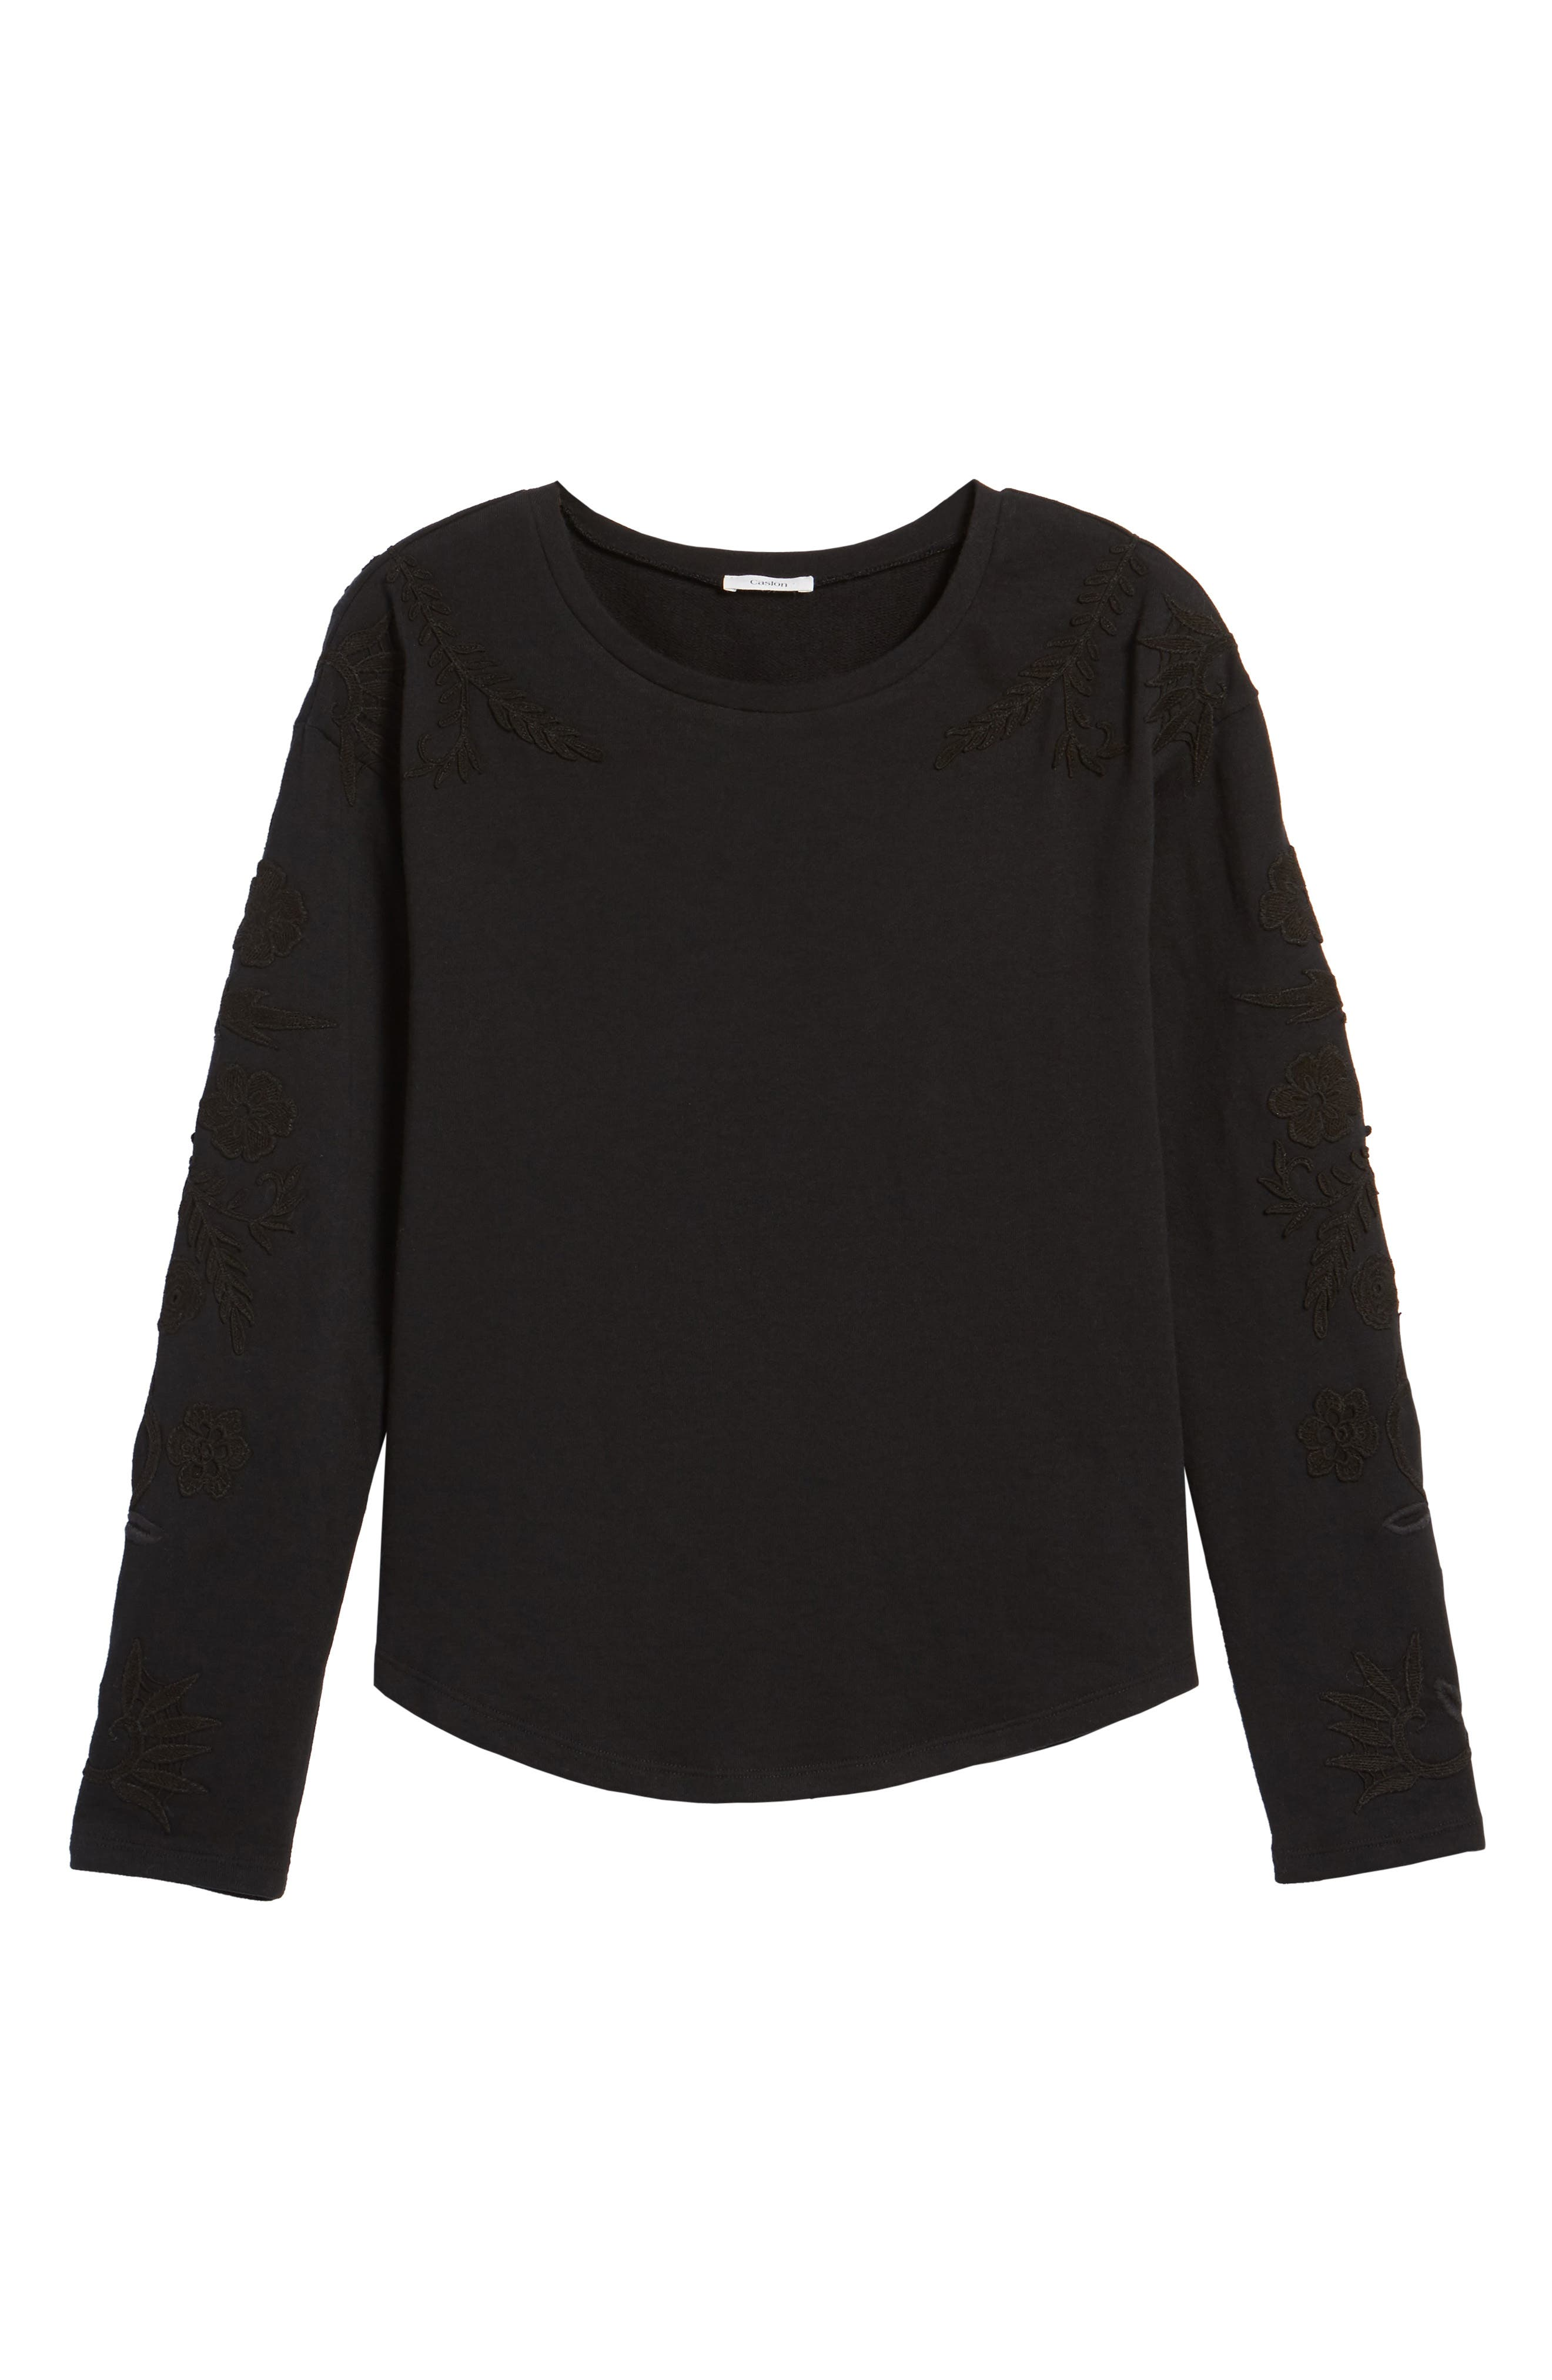 Embroidered Sleeve Sweatshirt,                             Alternate thumbnail 6, color,                             001